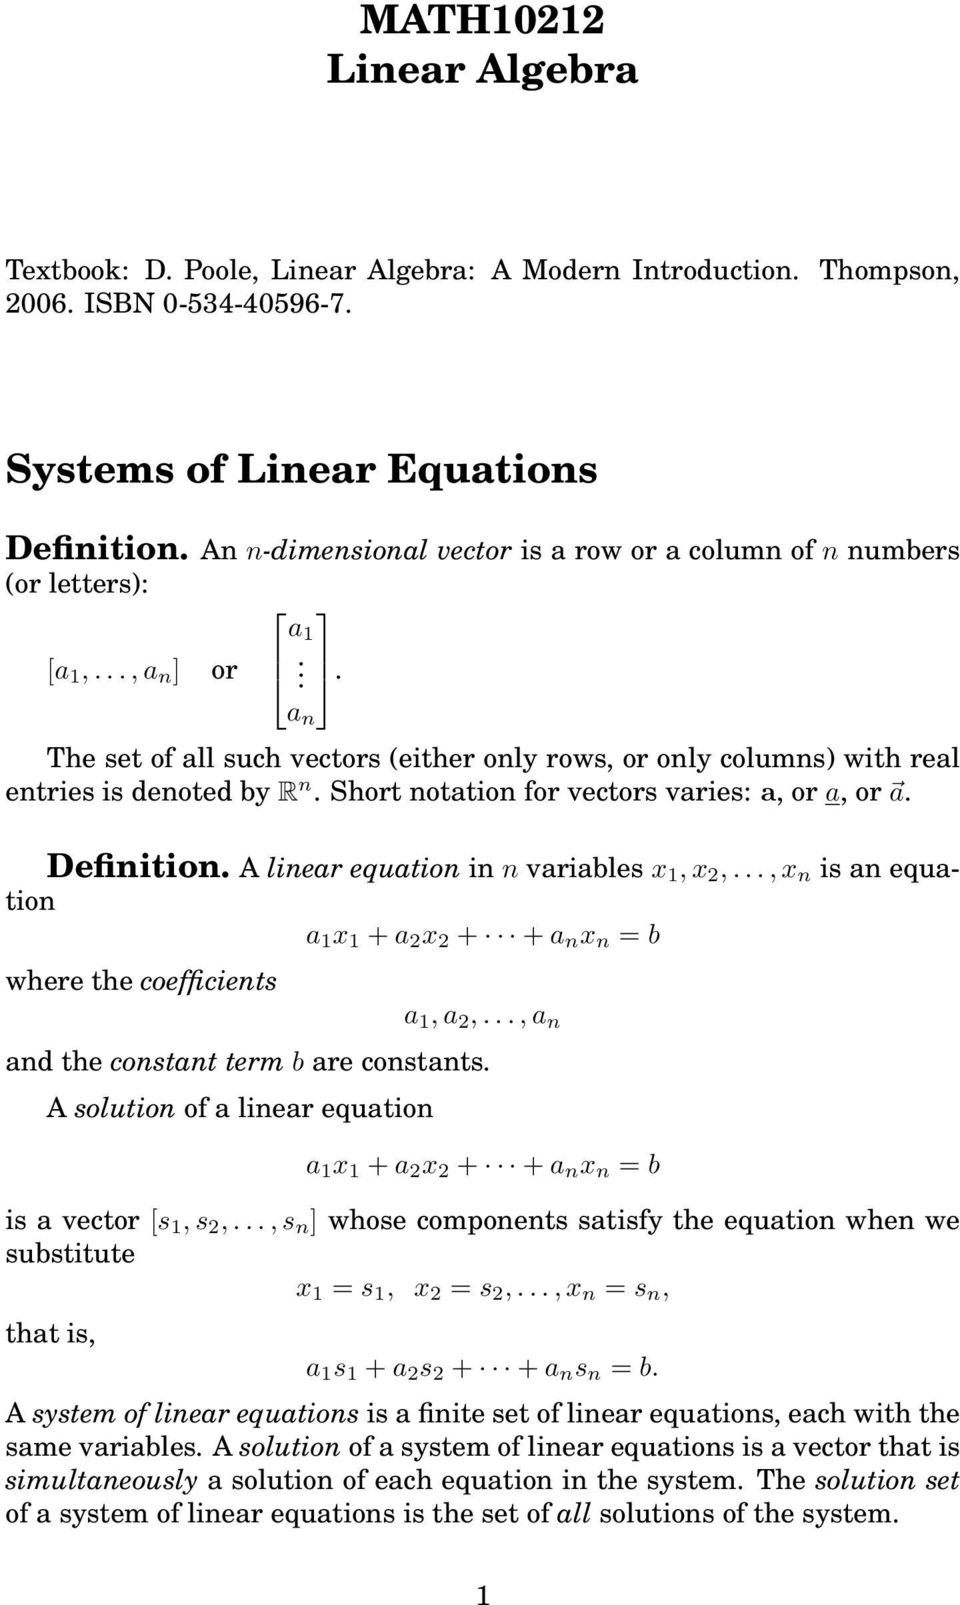 math10212 linear algebra. systems of linear equations. definition